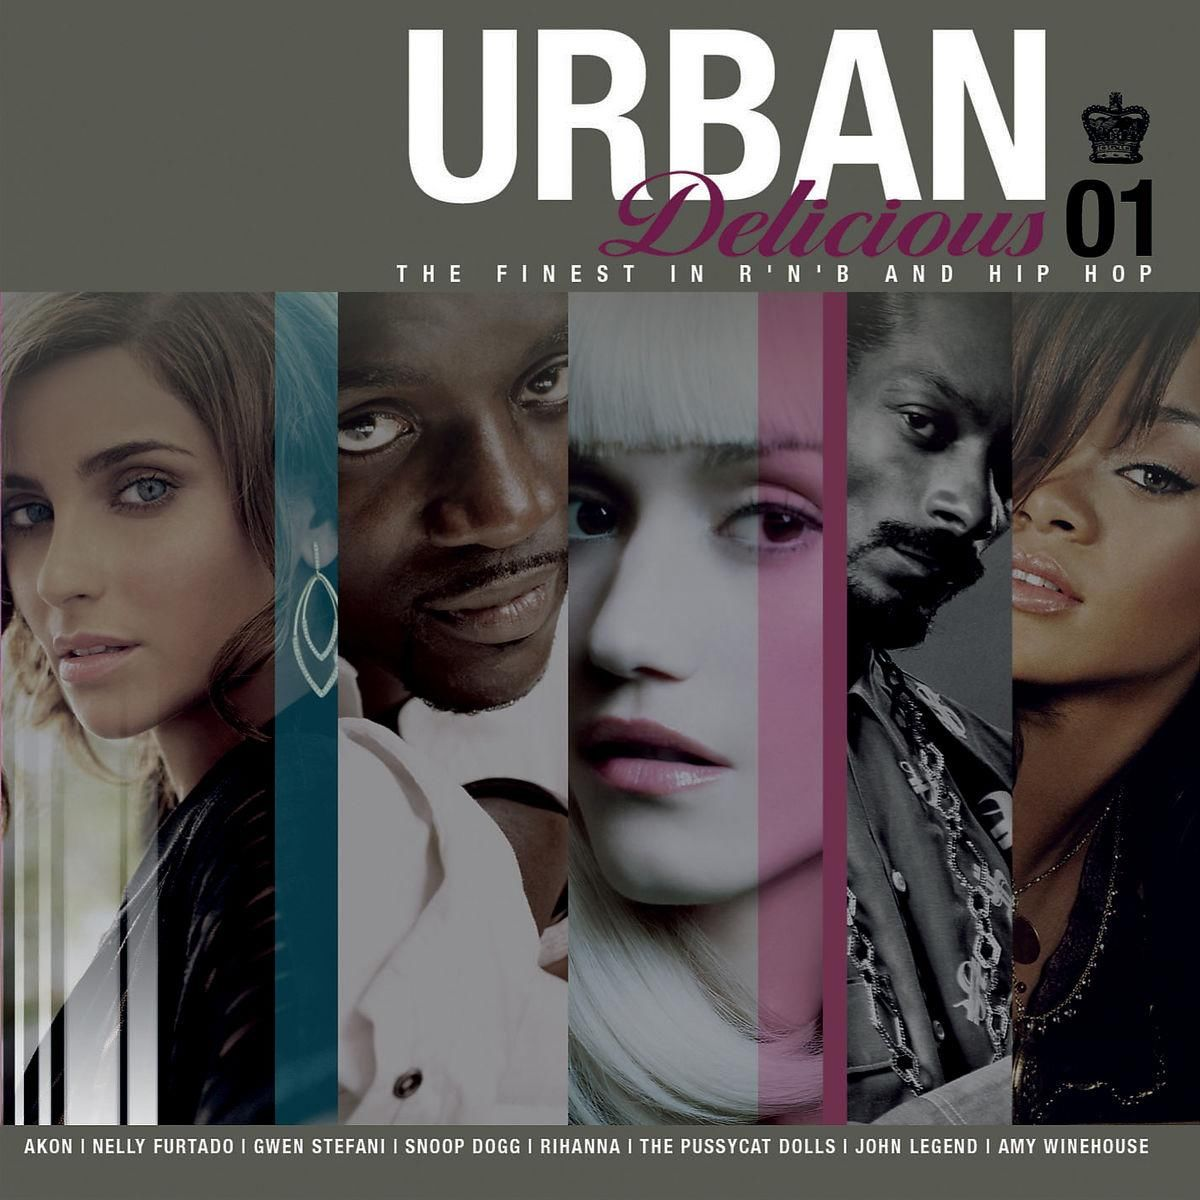 -urban_delicious_01_-_the_finest_in_rnb_and_hip_hop_a.jpg